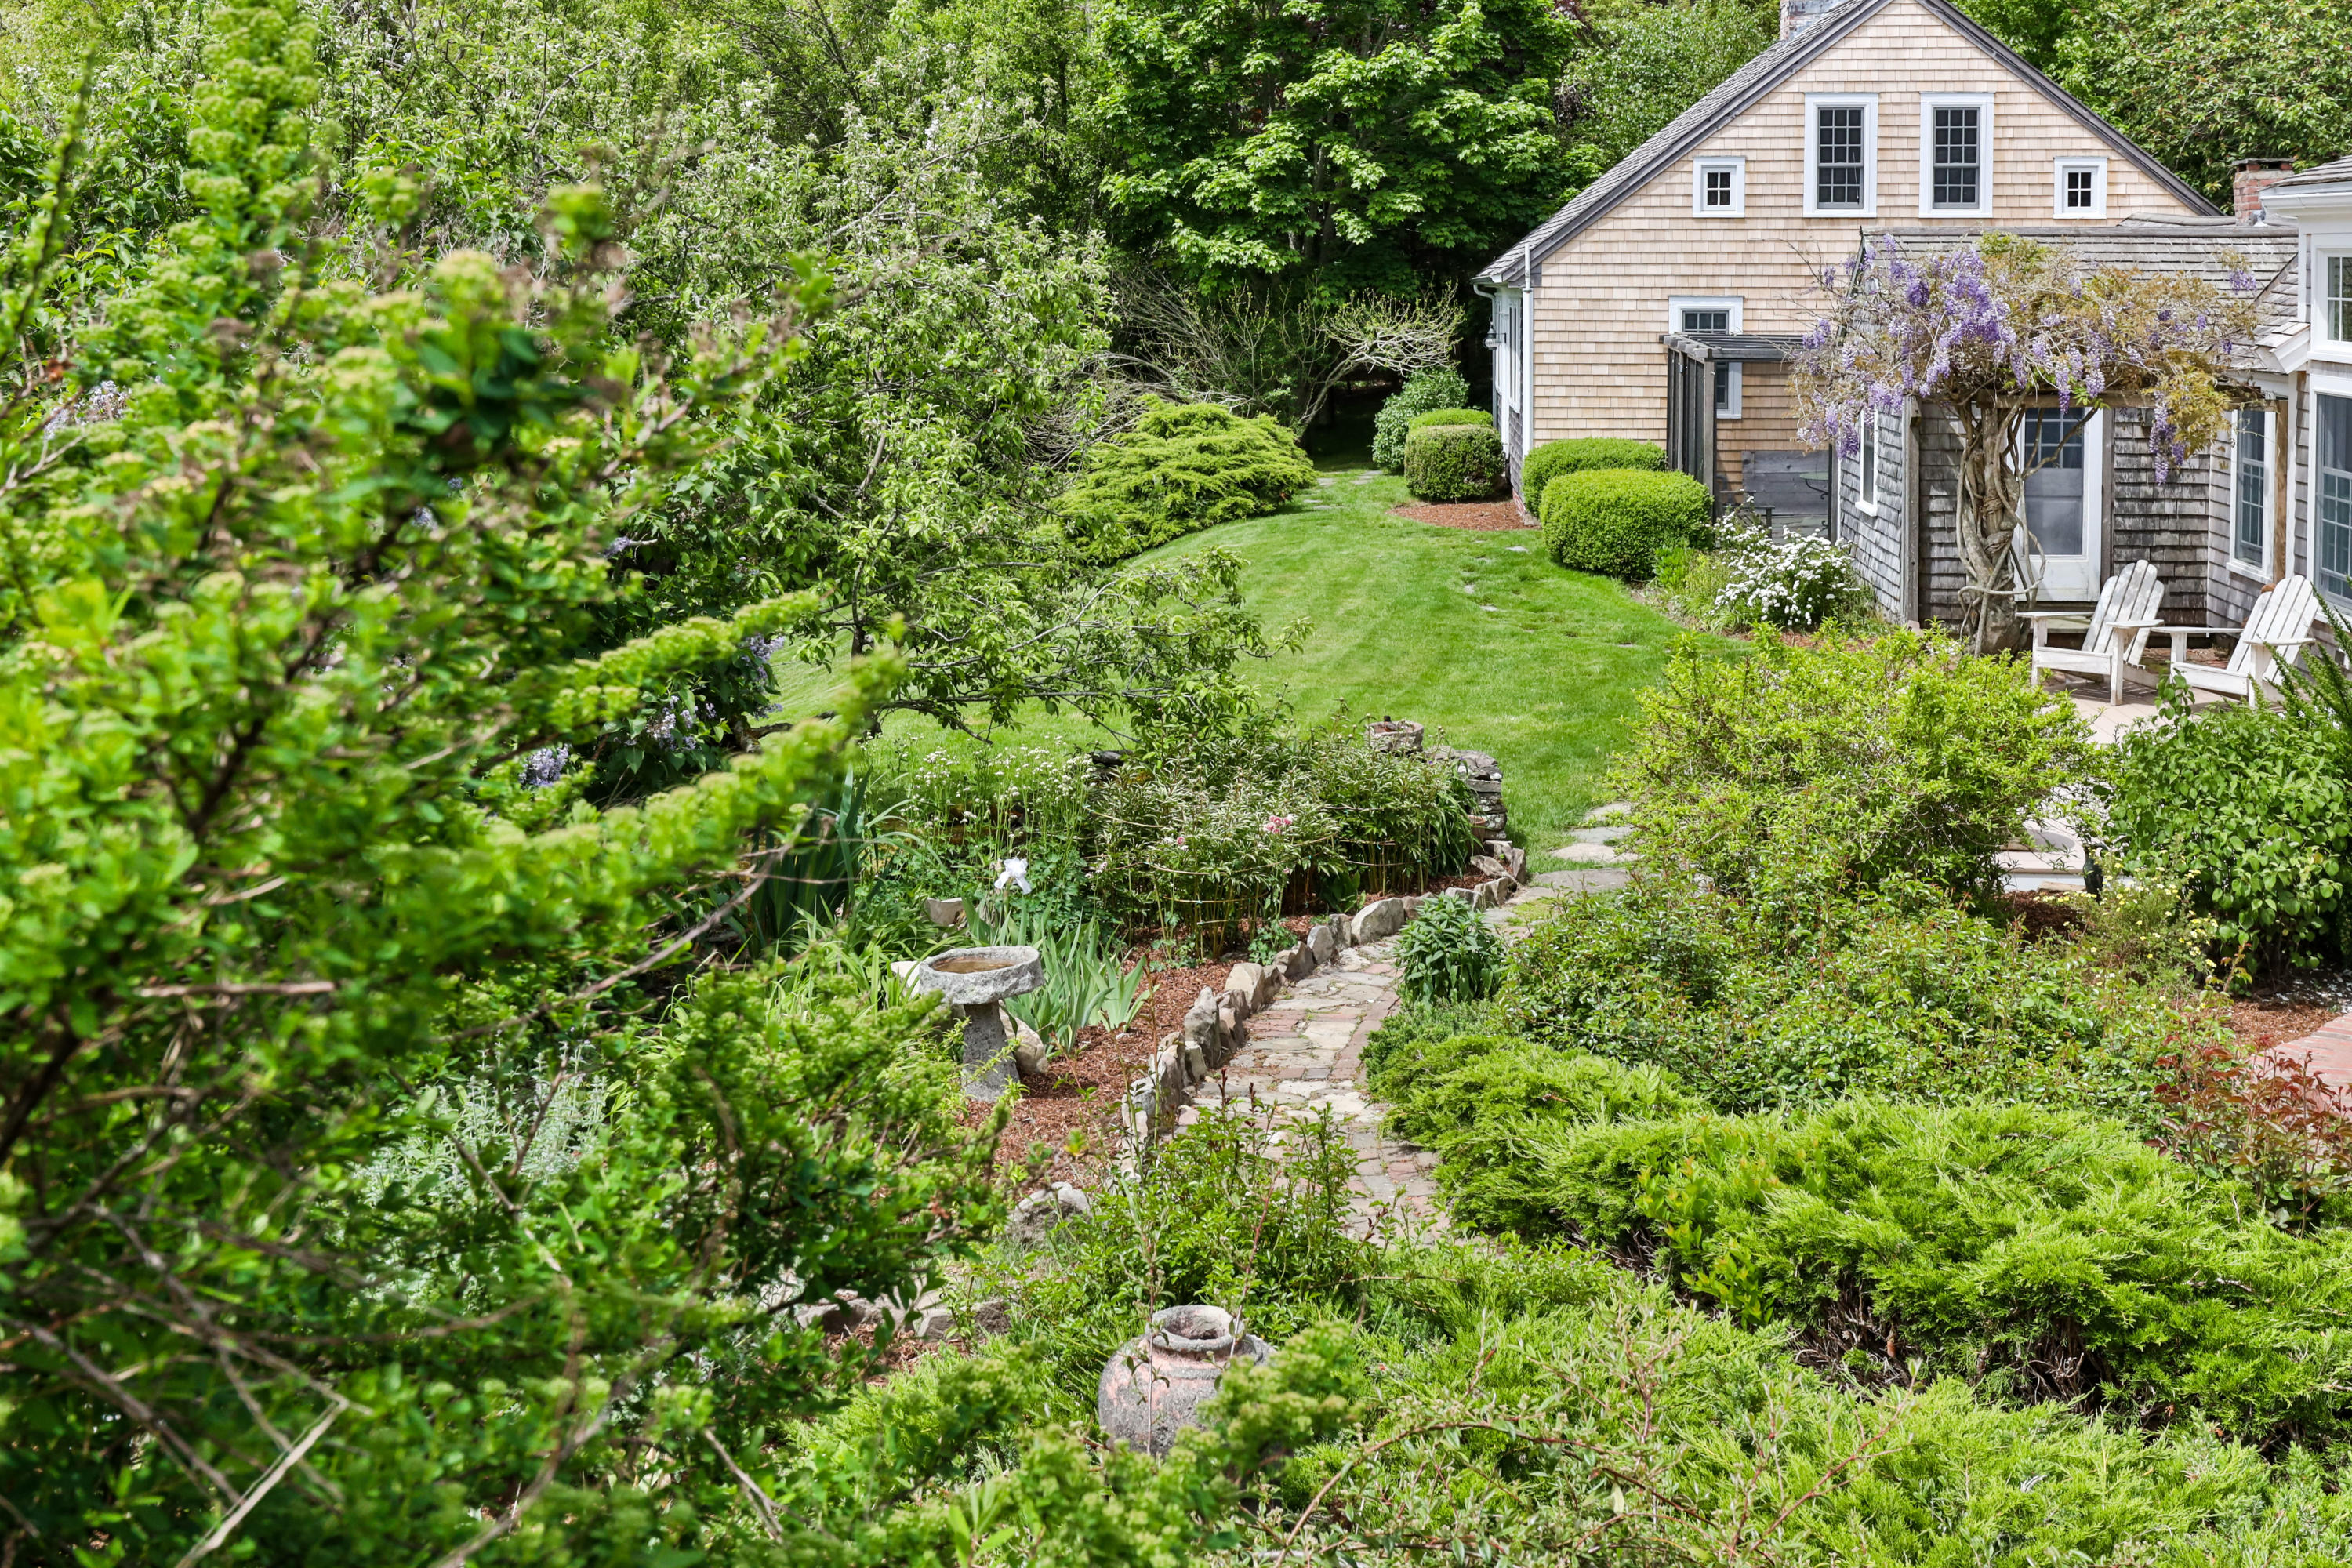 Backyard and garden with path